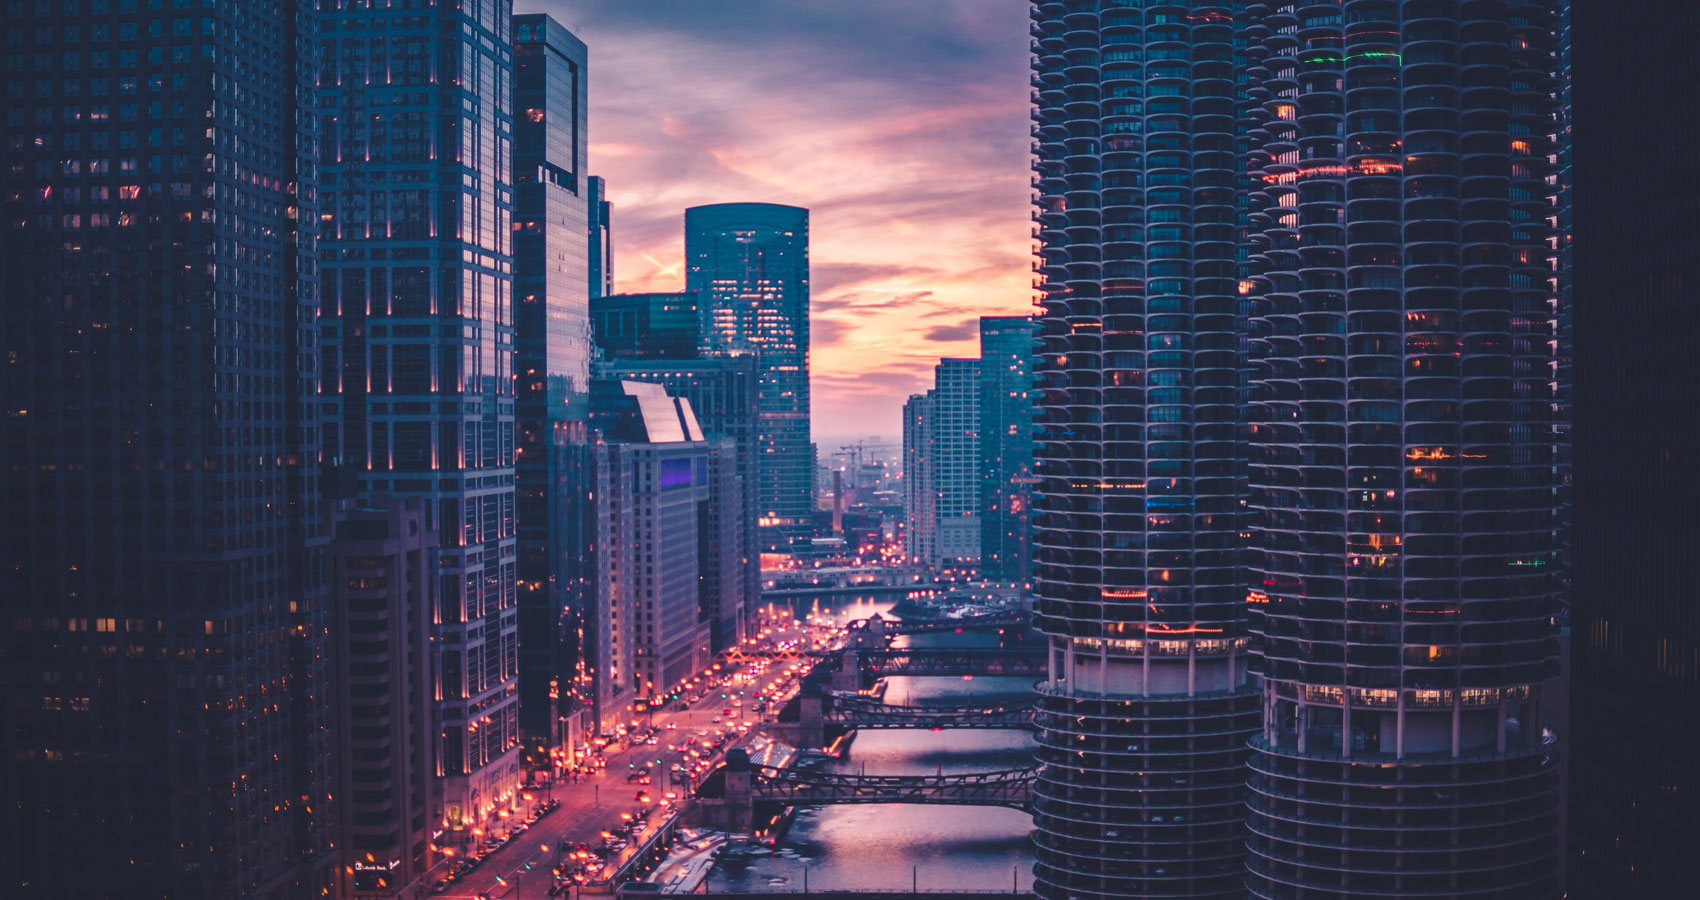 The Windy City, poetry written by Debra Sasak Ross at Spillwords.com